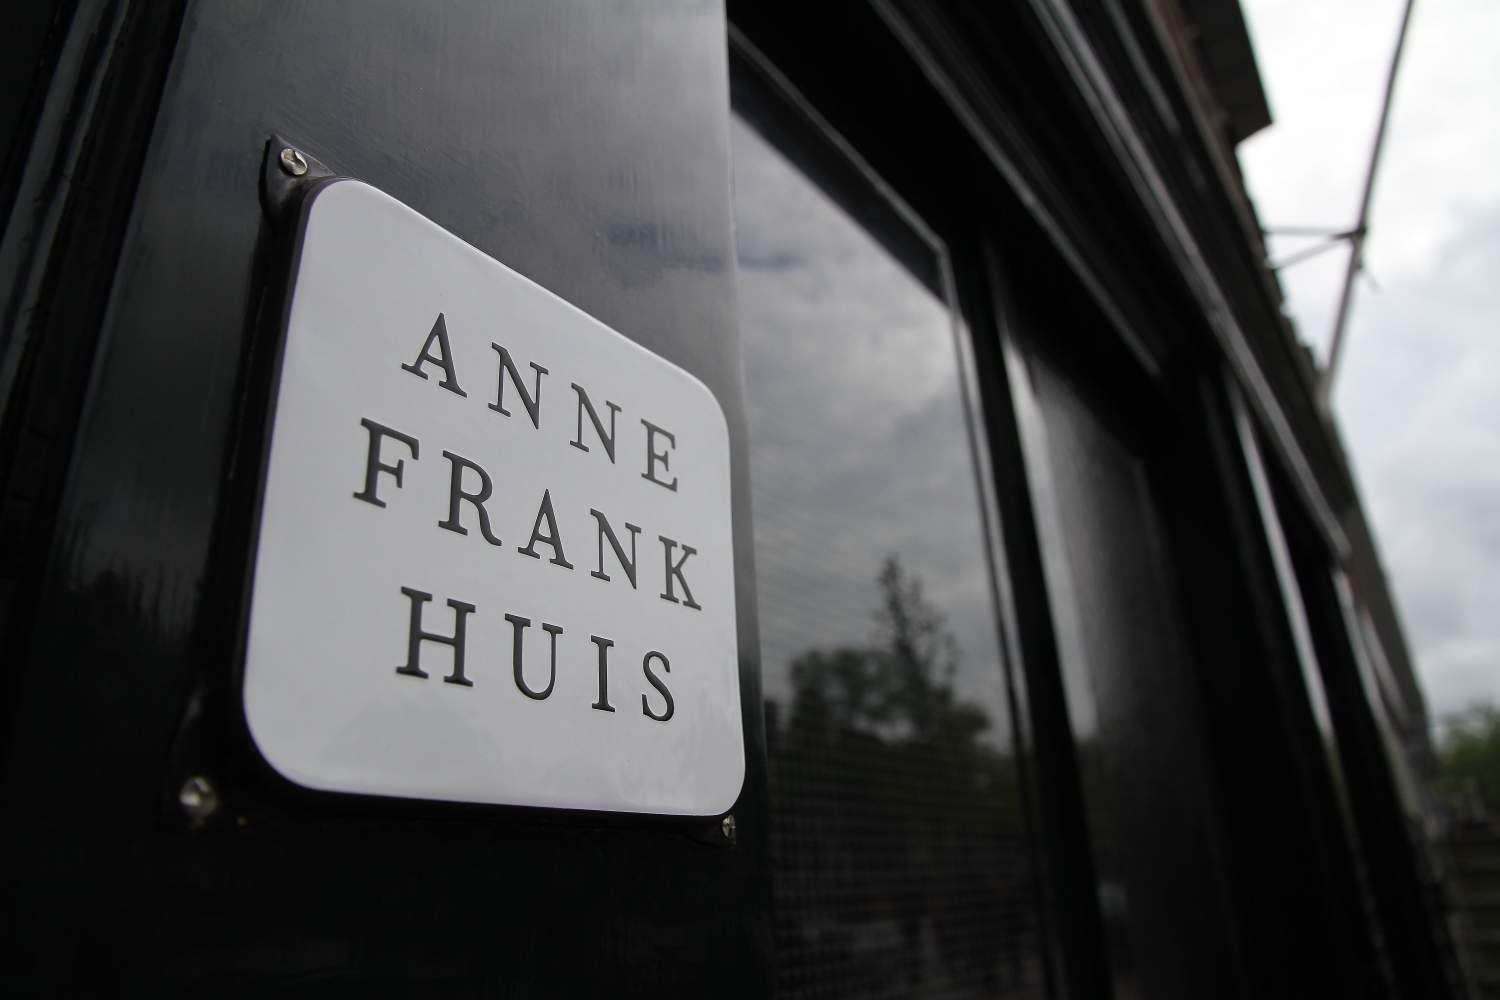 House of Anne Frank in Amsterdam